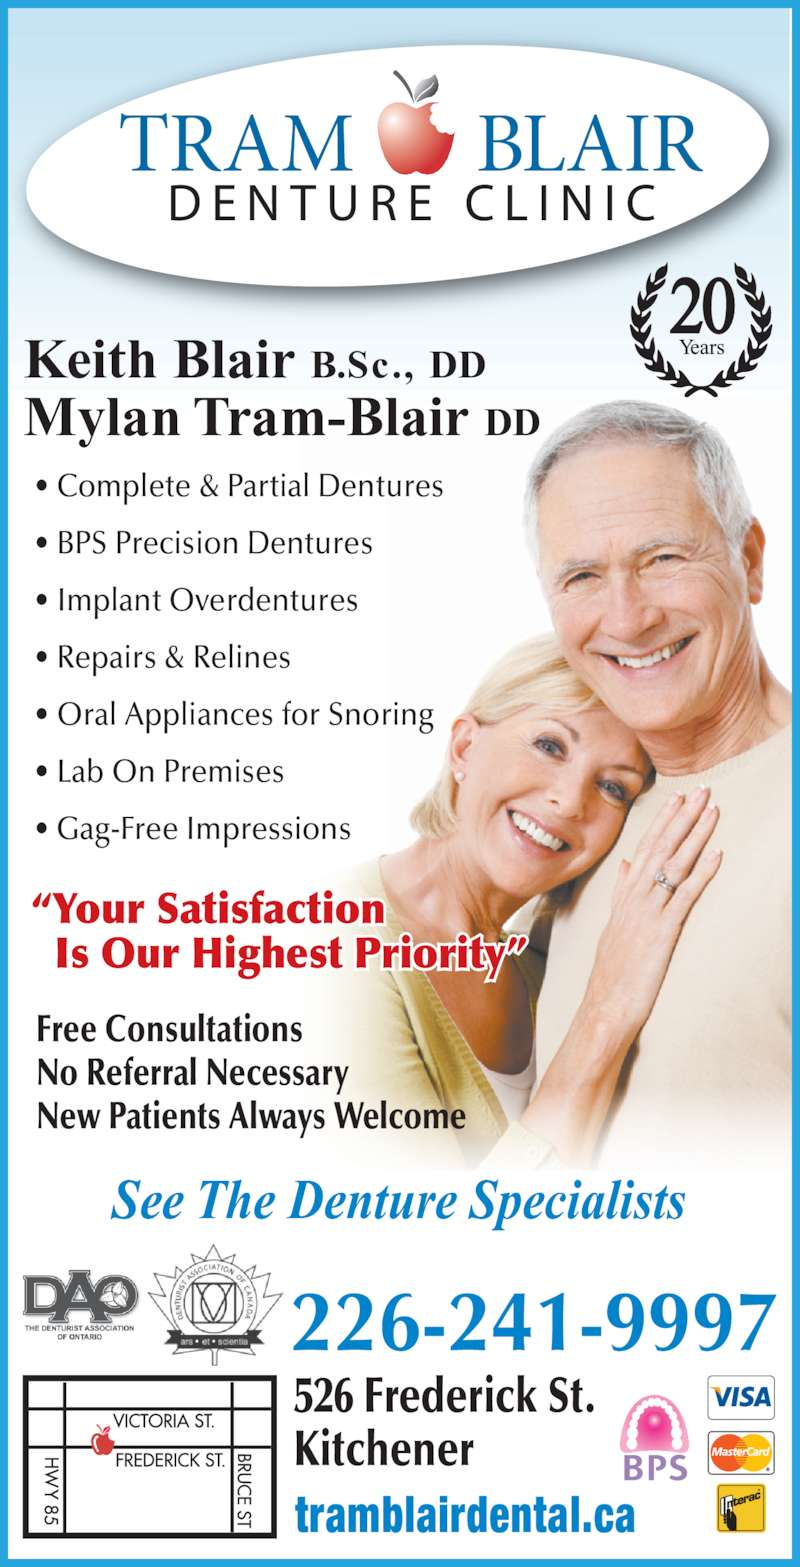 Tram-Blair Denture Clinic (519-884-9298) - Display Ad - Keith Blair B.Sc., DD See The Denture Specialists Mylan Tram-Blair DD 226-241-9997 526 Frederick St. Kitchener tramblairdental.ca ? Complete & Partial Dentures ? BPS Precision Dentures ? Implant Overdentures ? Repairs & Relines ? Oral Appliances for Snoring ? Lab On Premises ? Gag-Free Impressions ?Your Satisfaction   Is Our Highest Priority? Free Consultations No Referral Necessary New Patients Always Welcome 20